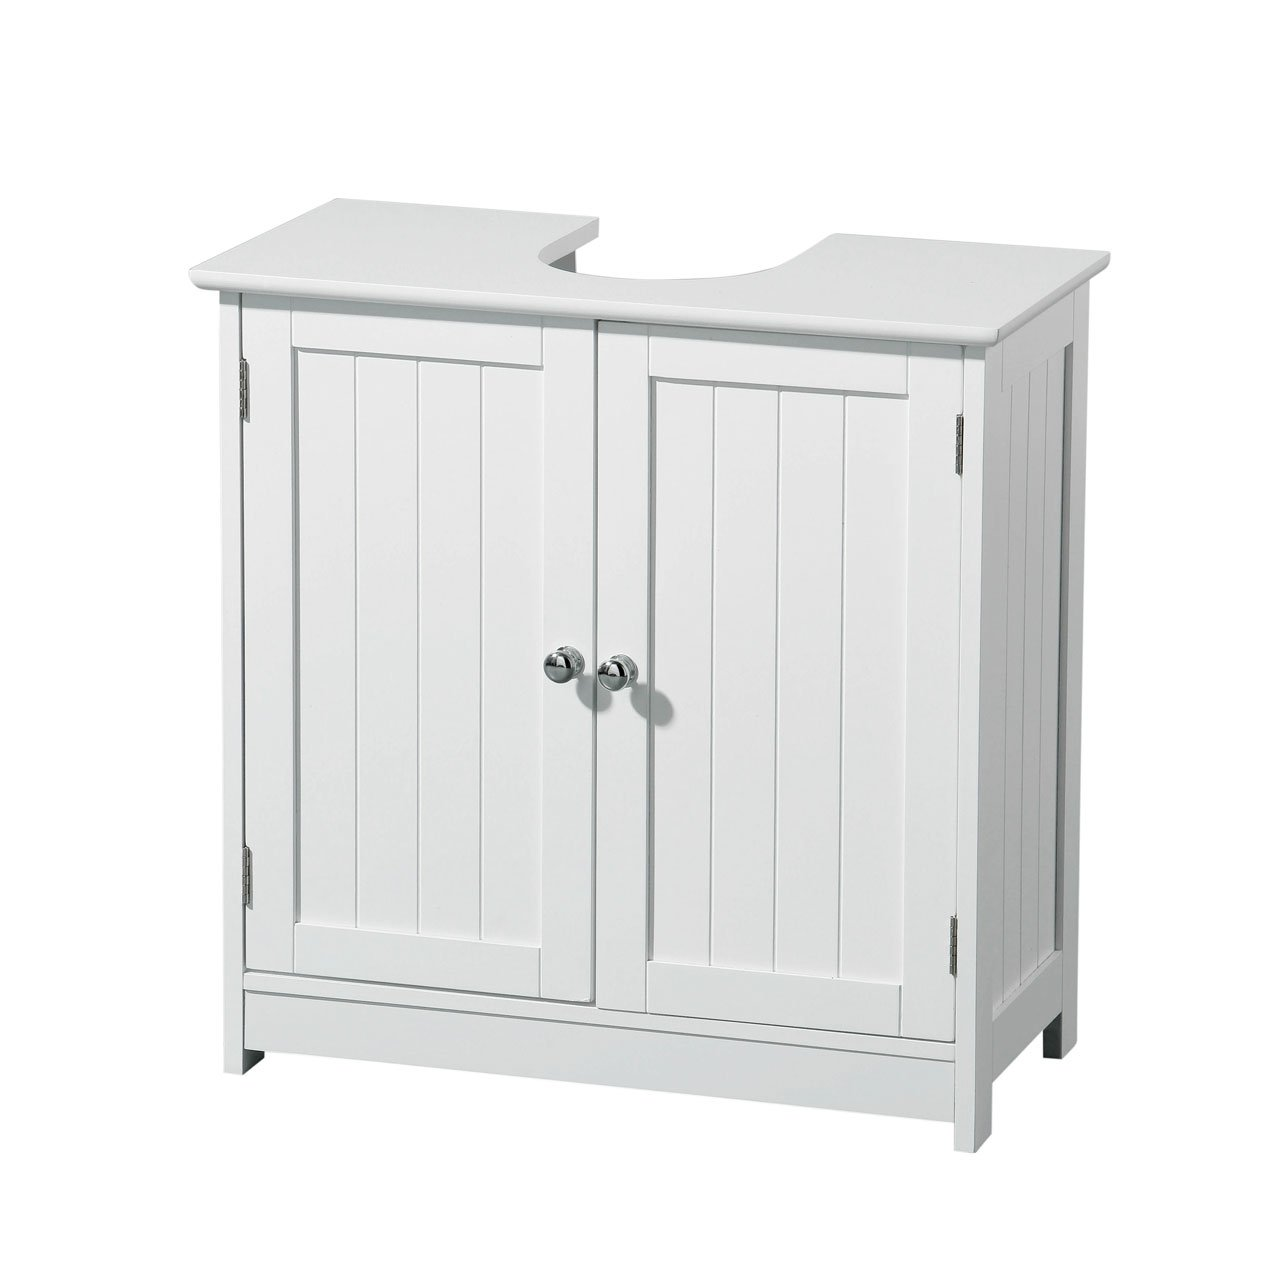 Elegant QUALITY WHITE WOOD UNDER SINK CABINET BATHROOM STORAGE: Amazon.co.uk: DIY U0026  Tools